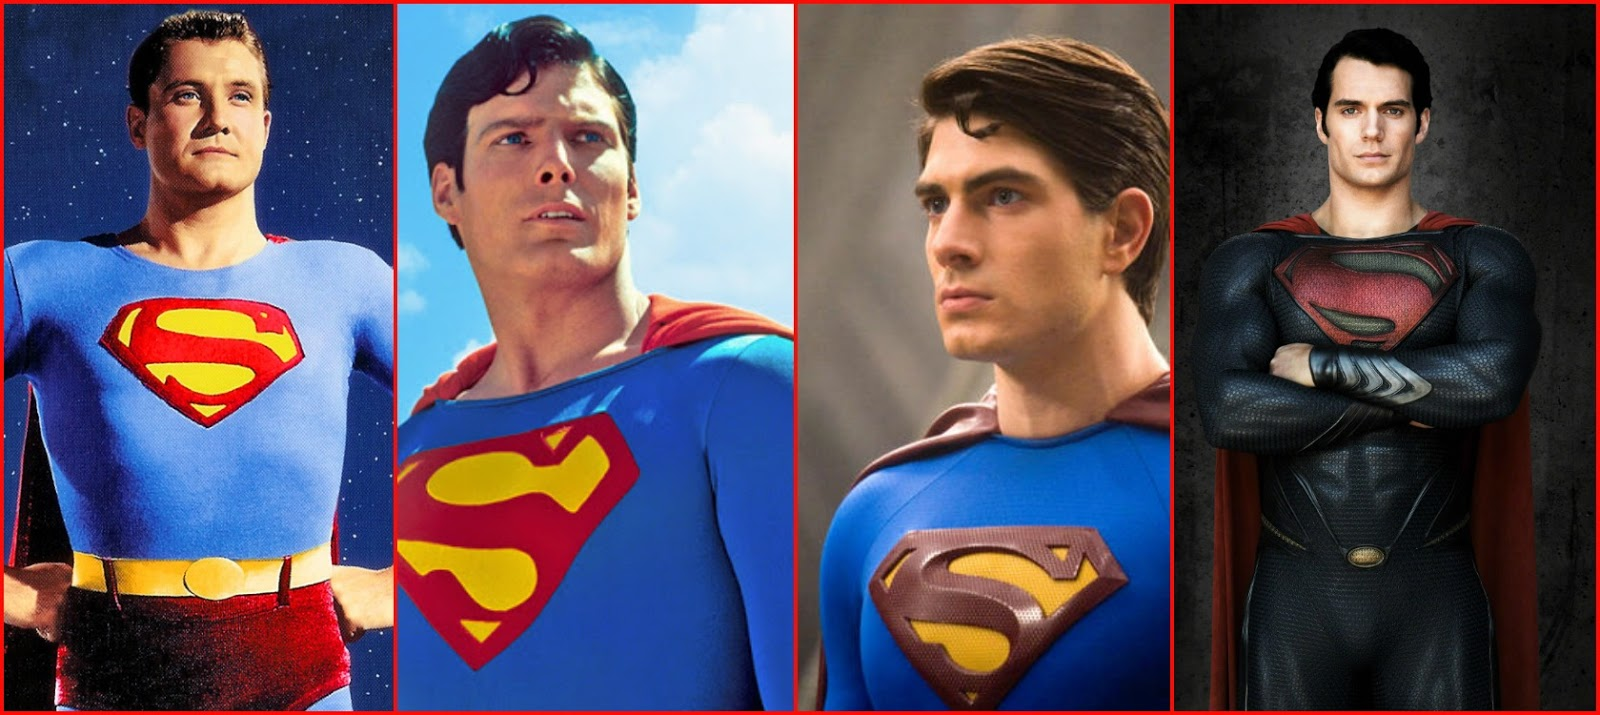 George Reeves Christopher Reeve Brandon Routh And Henry Cavill As Superman